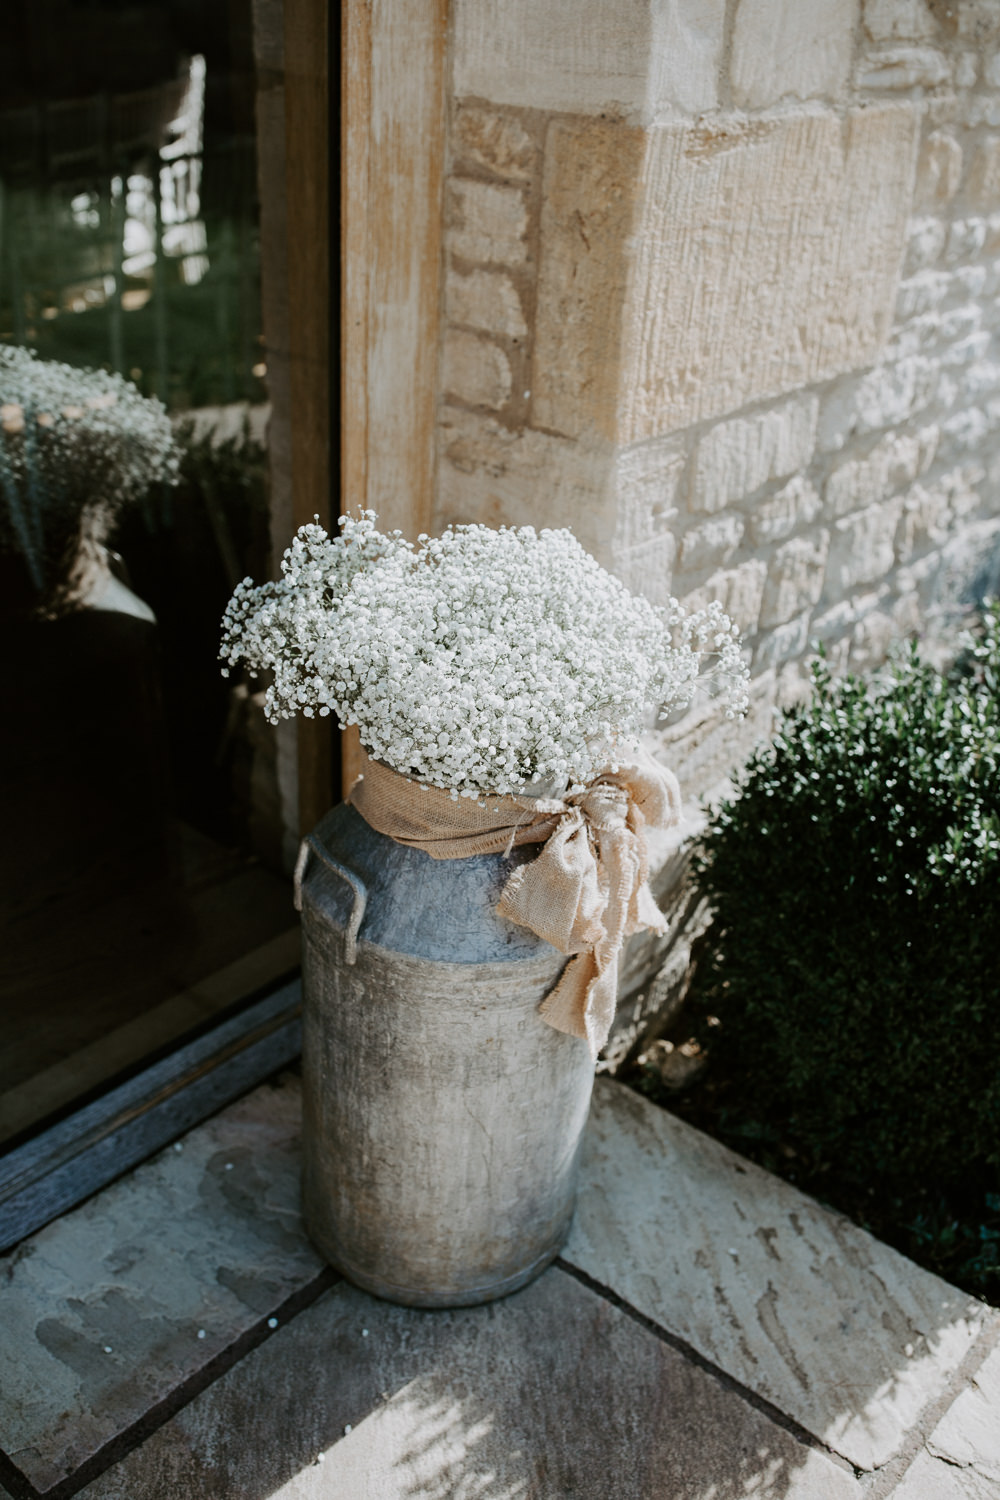 Mil Churn Flowers Gypsophila Barn Upcote Wedding Siobhan Beales Photography